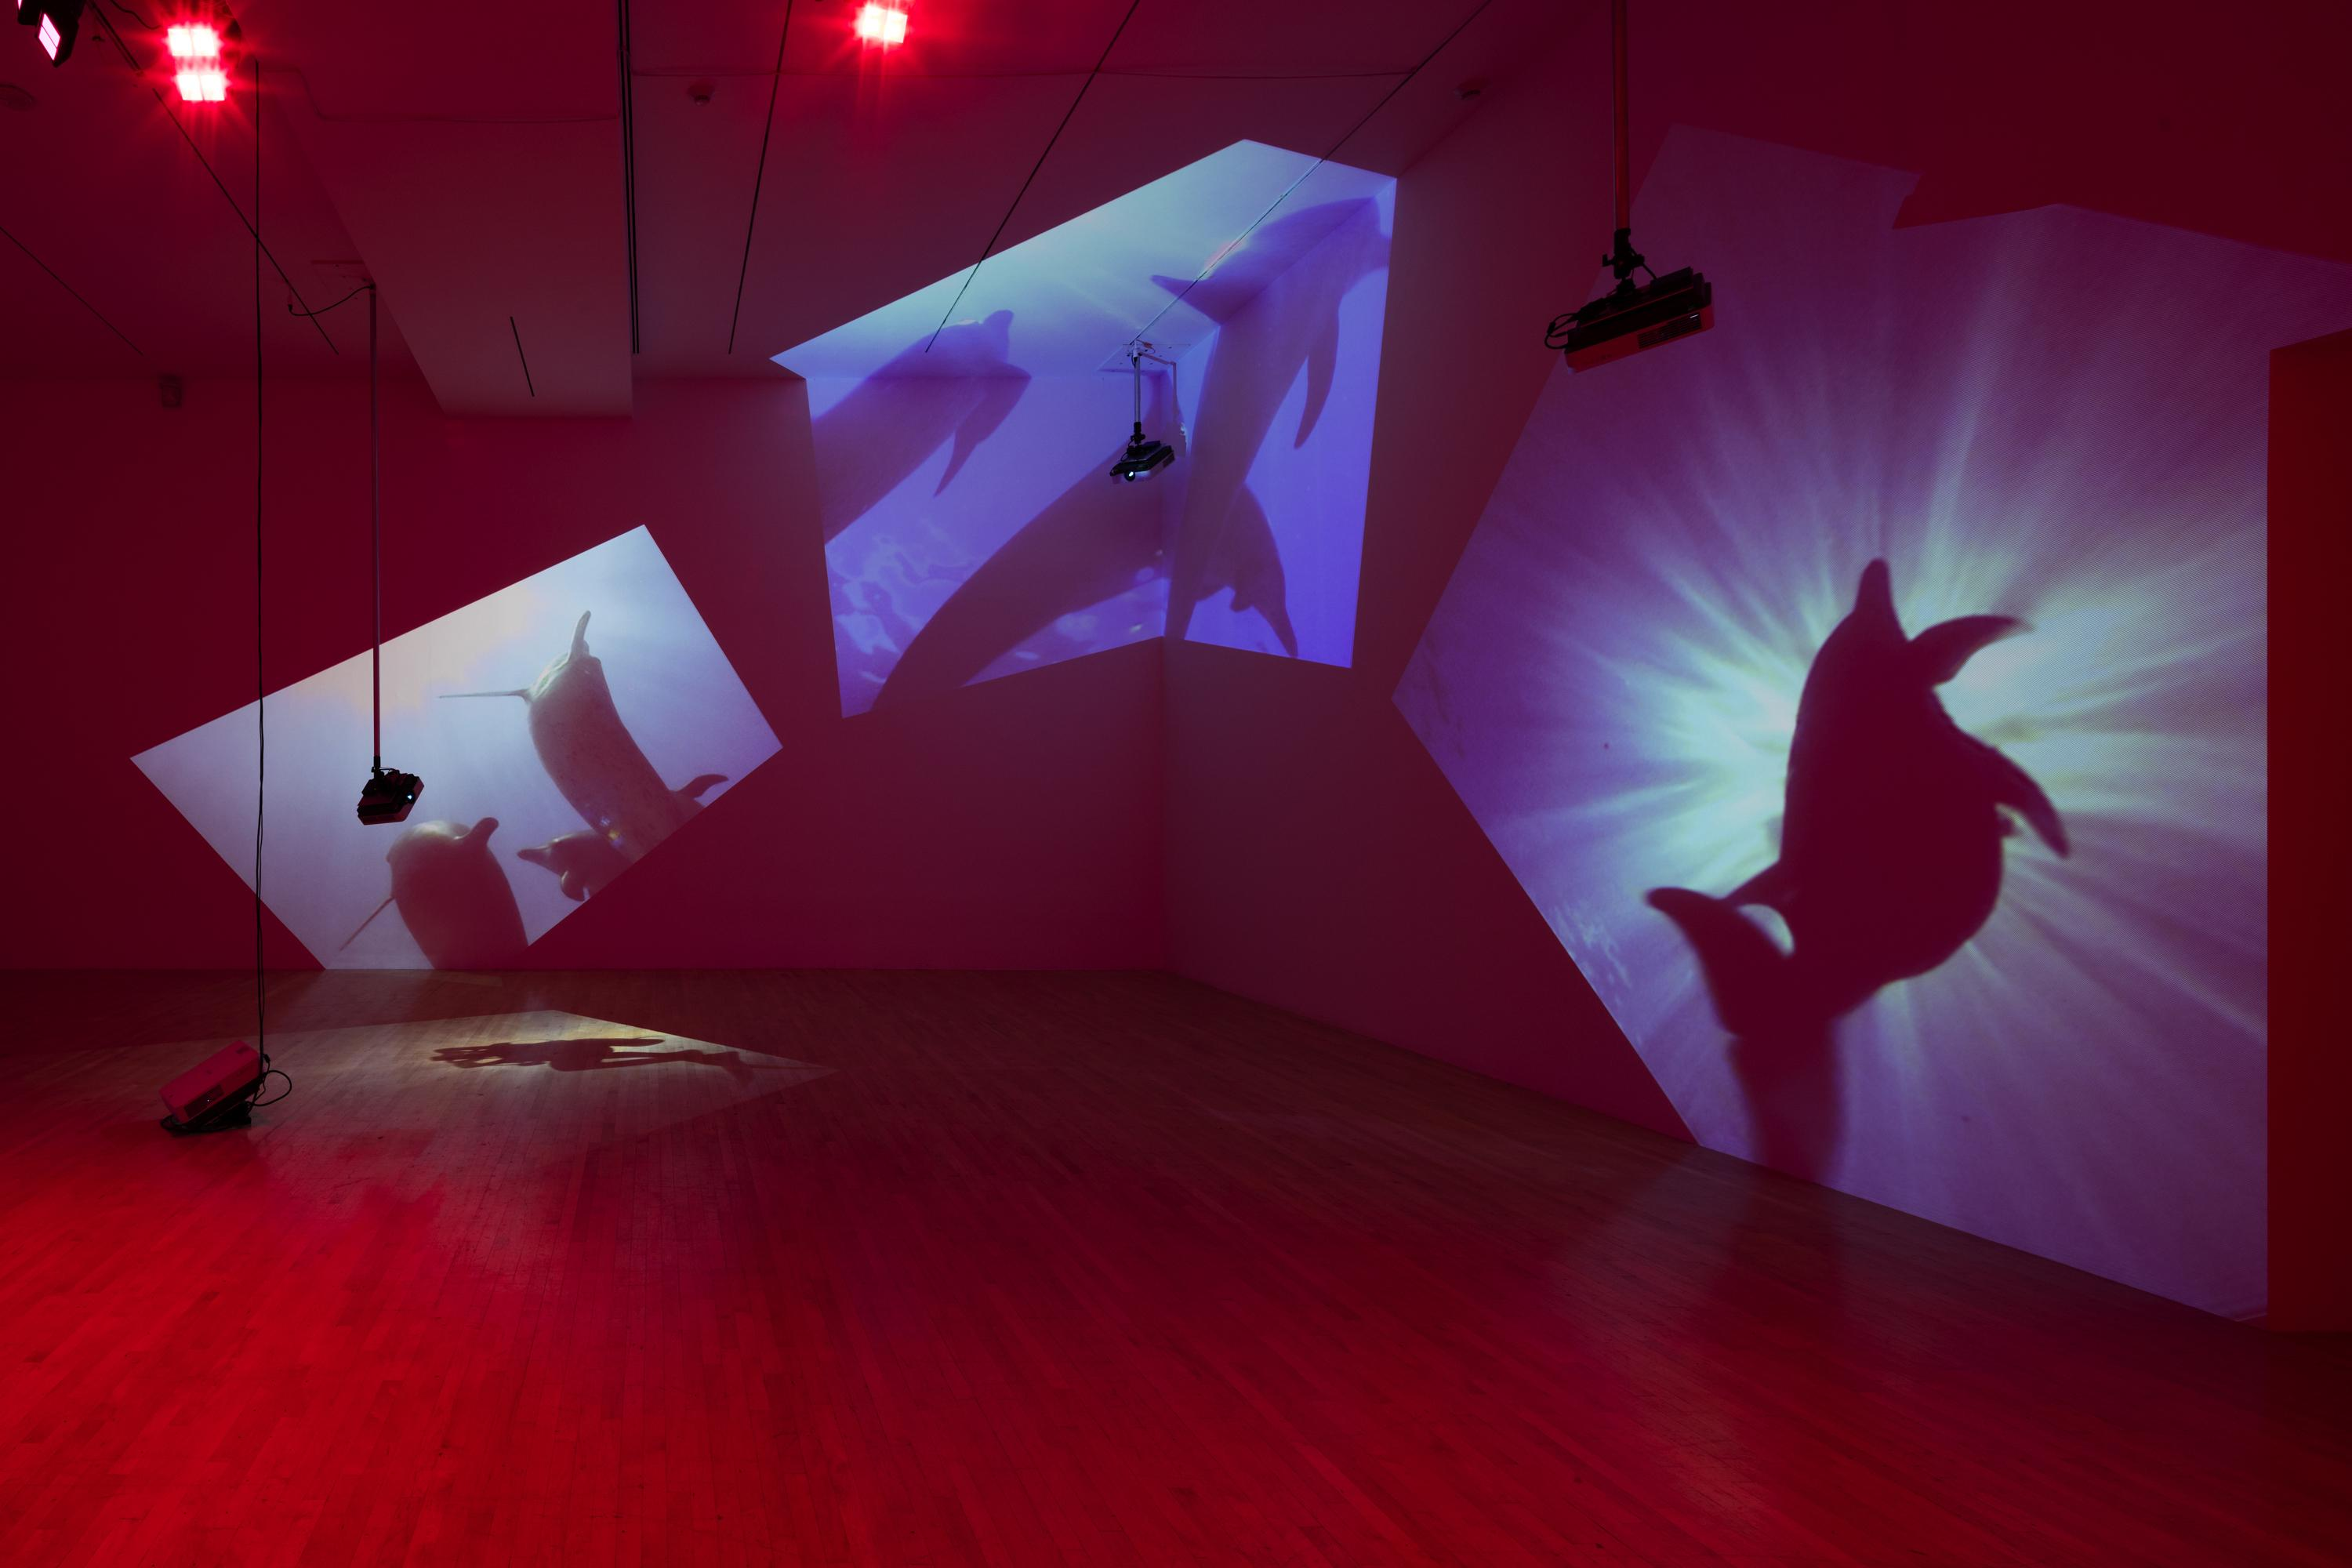 A gallery installation featuring three videos of dolphins underwater projected on the walls and floor. The projectors are visibly suspended at varied heights in the magenta-colored room.